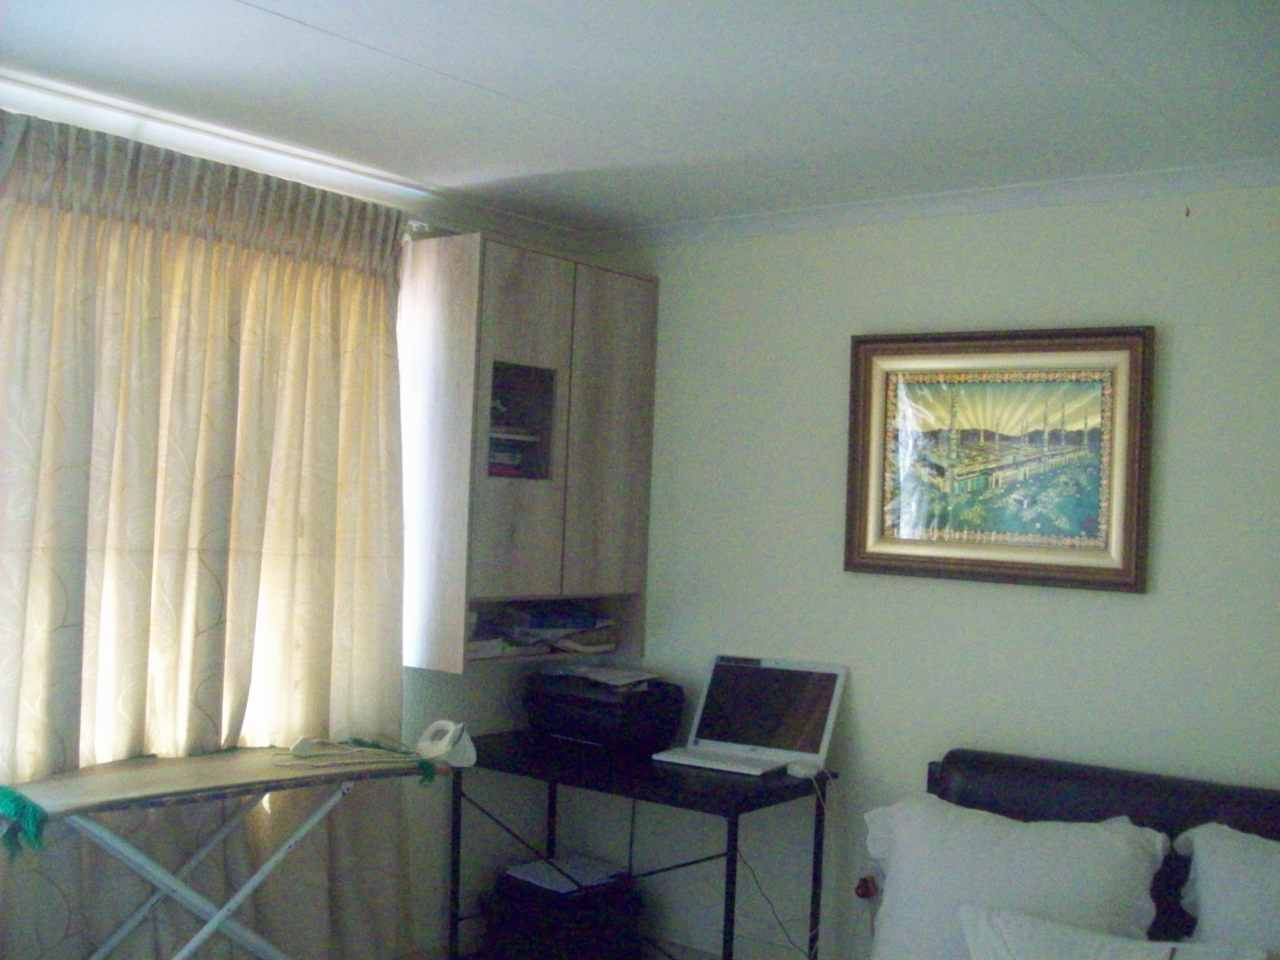 3 Bedroom Townhouse for sale in Bassonia ENT0071278 : photo#33